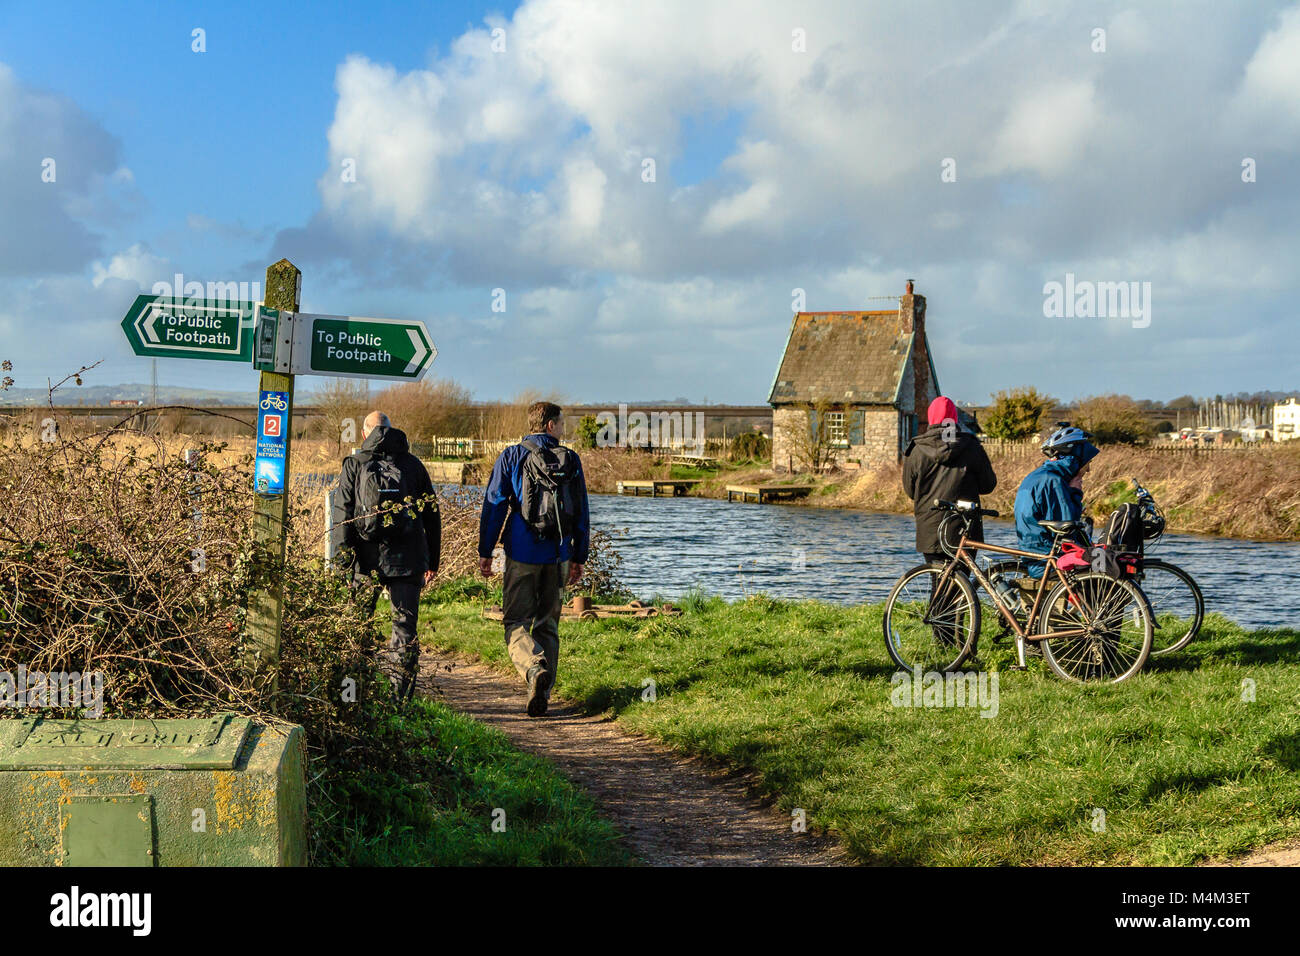 Cyclists and walkers by a canal on the Exe Estuary, near the ferry to Topsham. - Stock Image